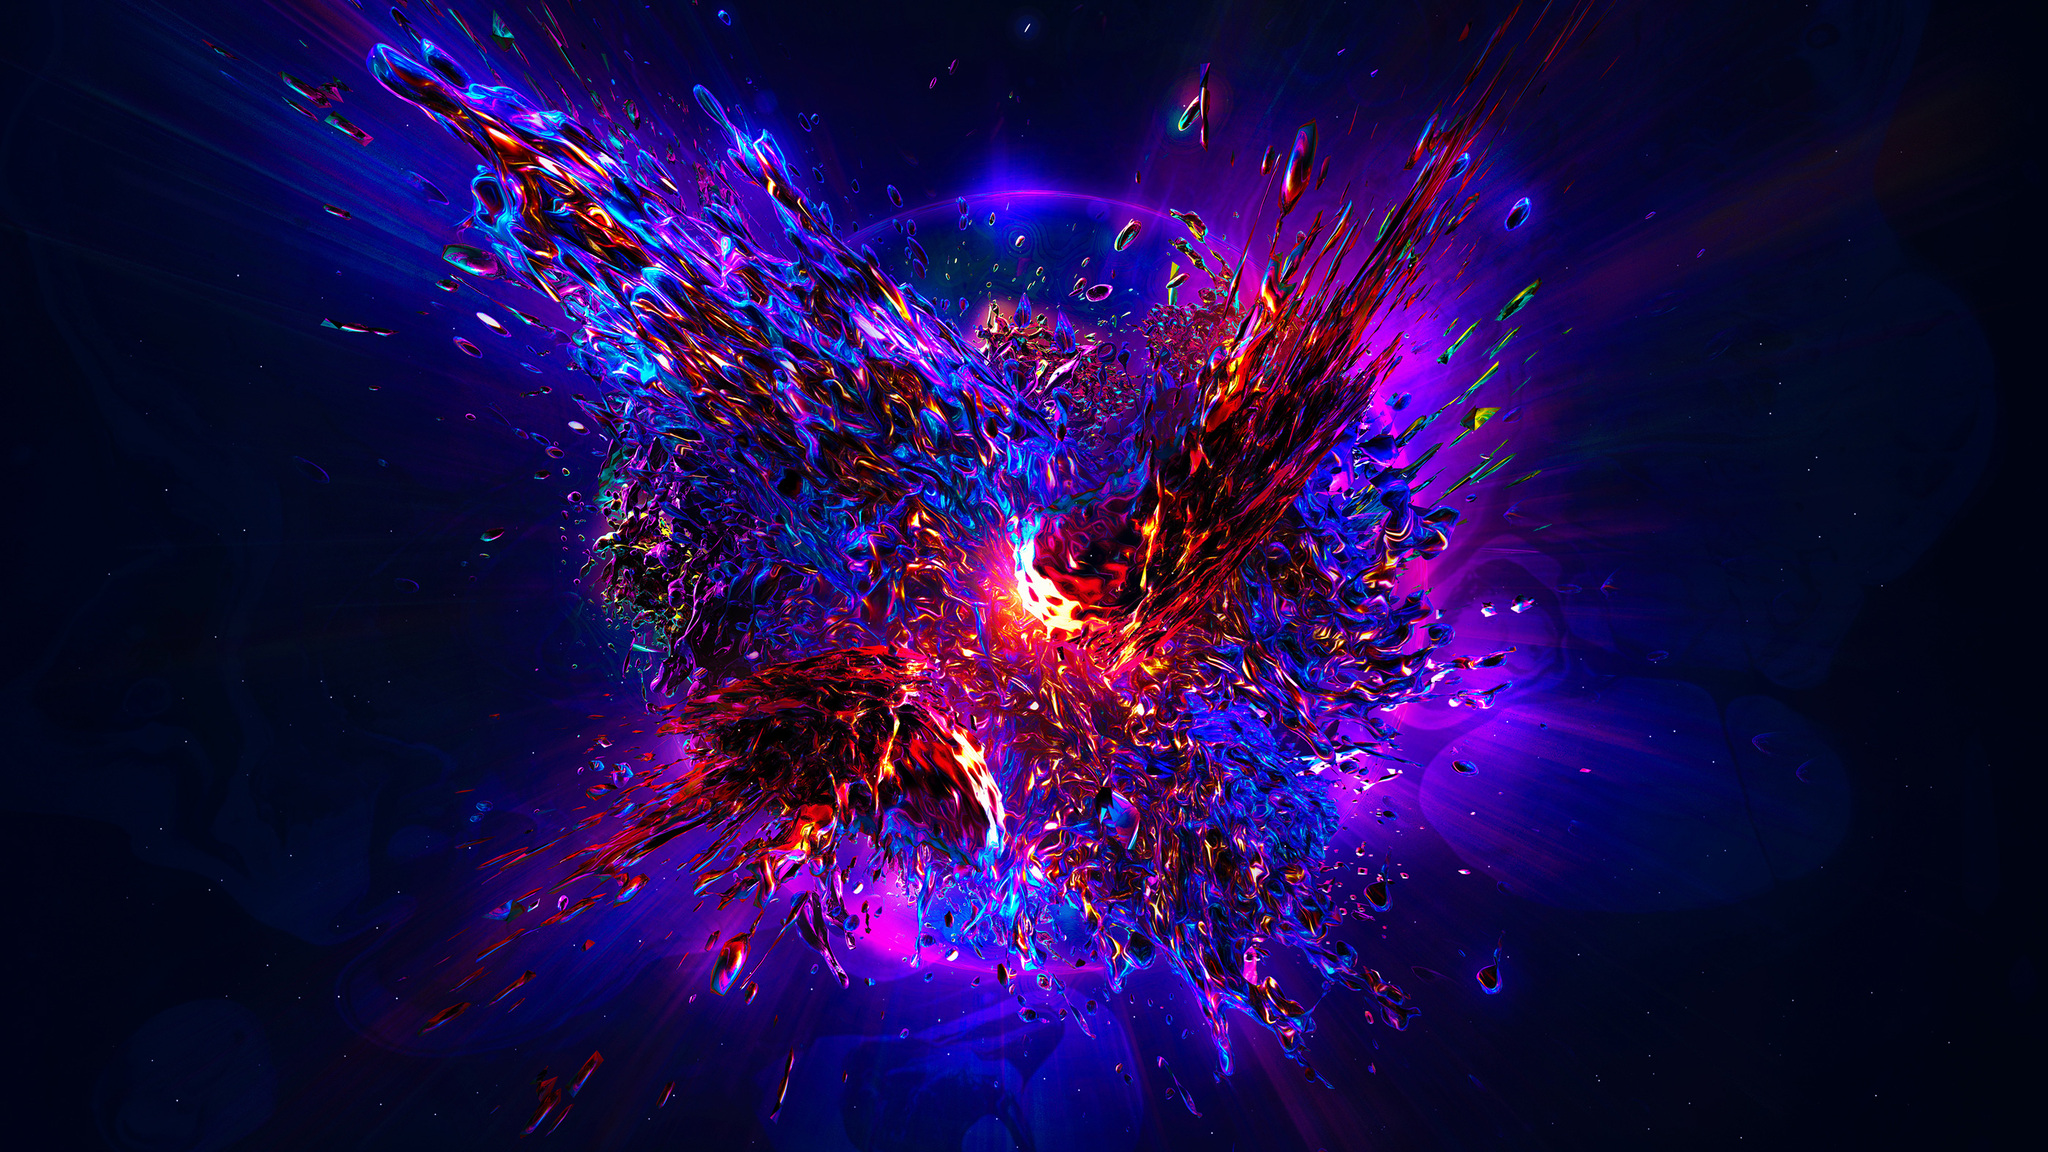 2048x1152 Abstract Explosion Resolution HD 4k Wallpapers